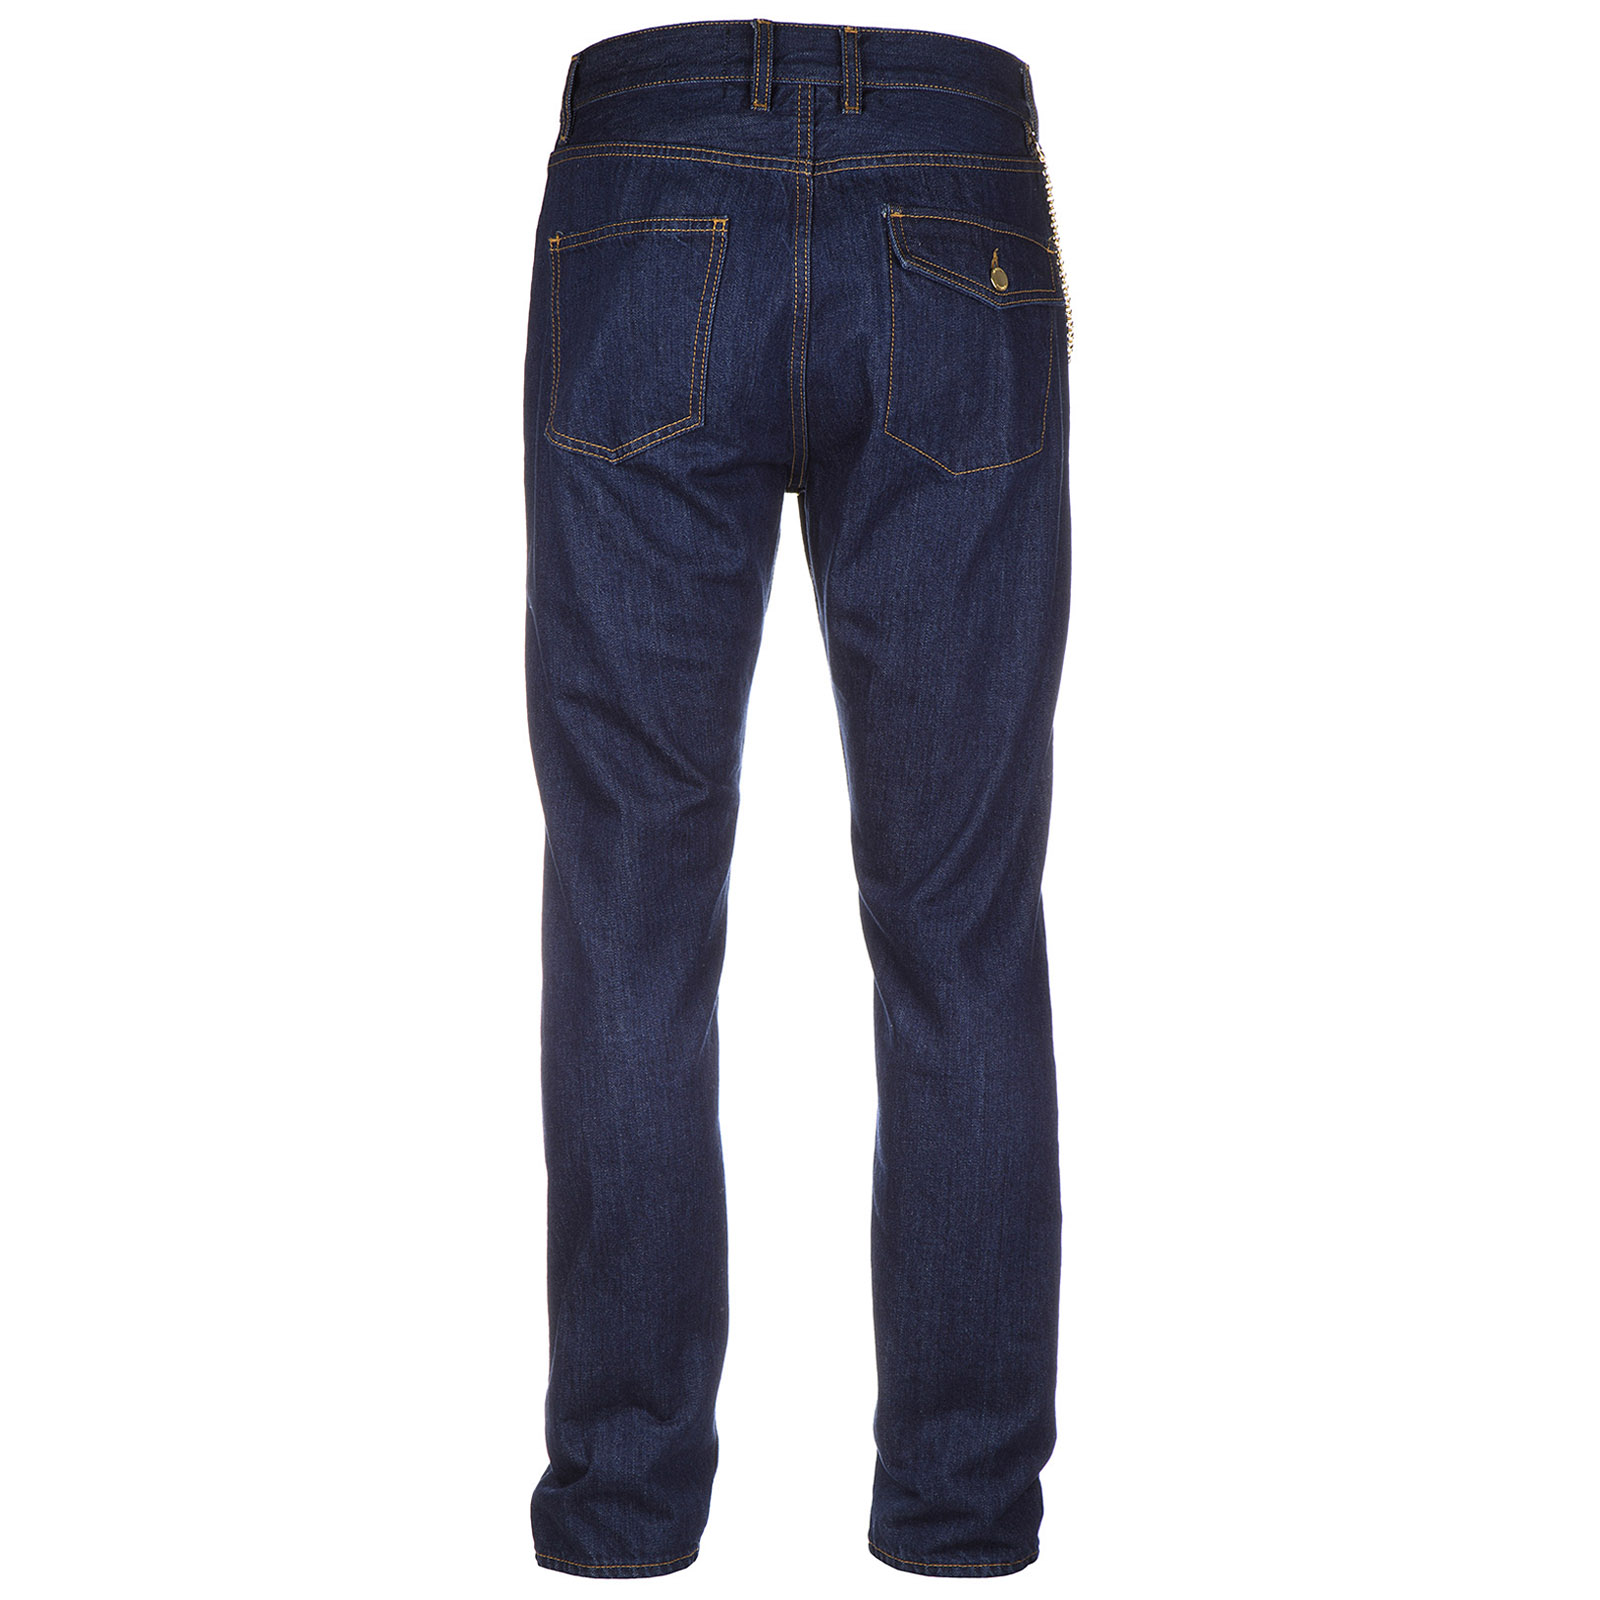 Jeans jean homme